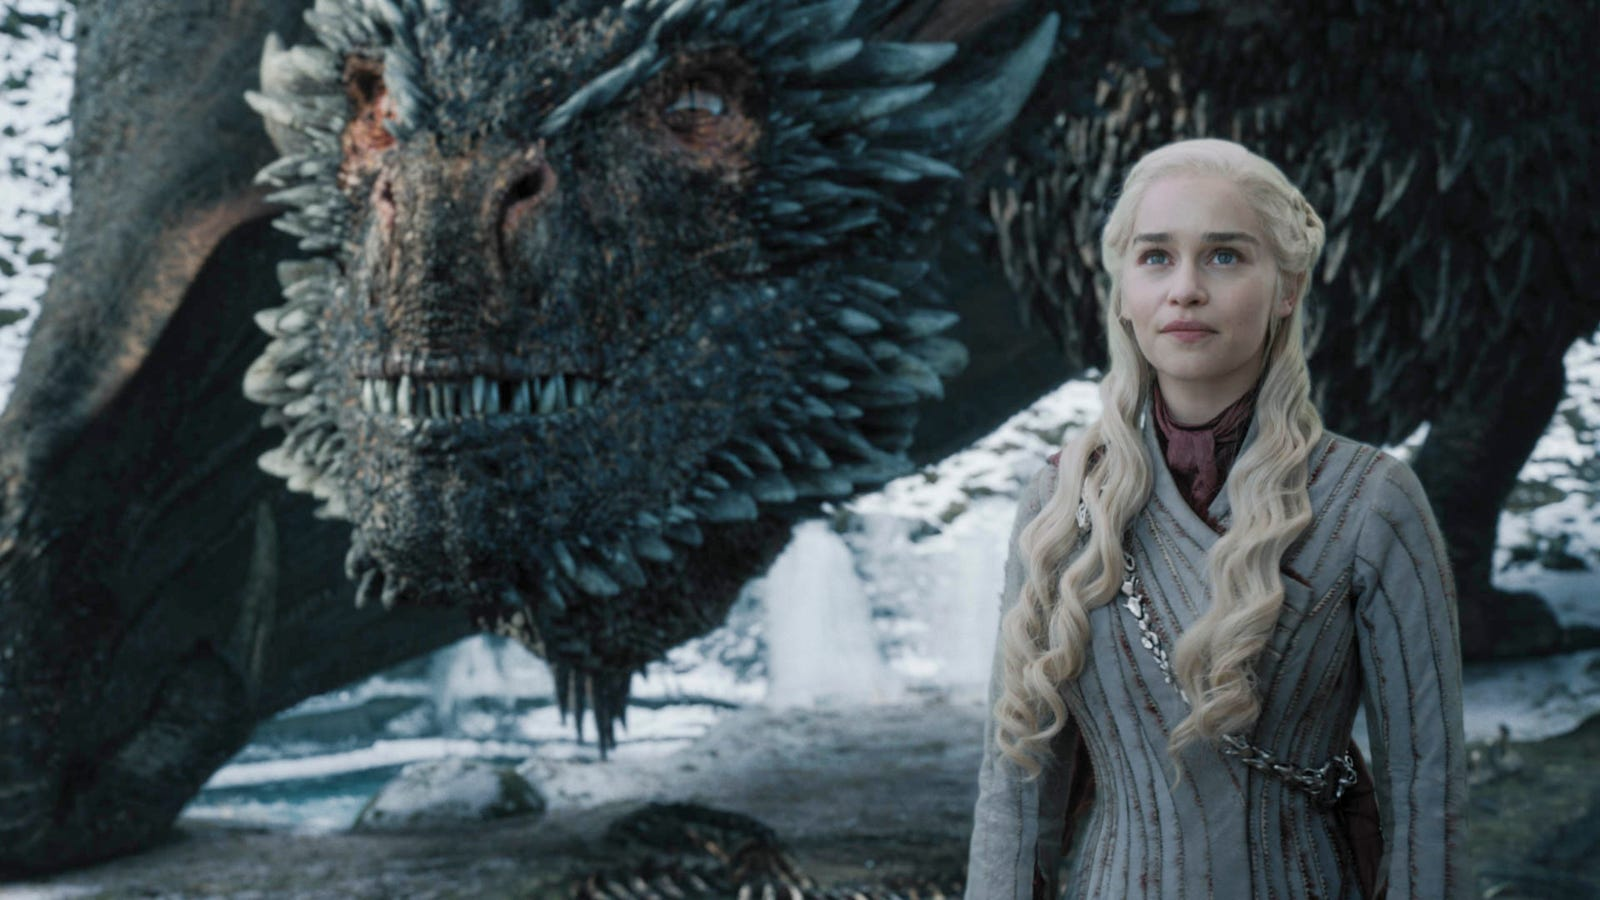 Daenerys and Drogon have some quality bonding time over carcasses. All photos: Helen Sloane/HBO